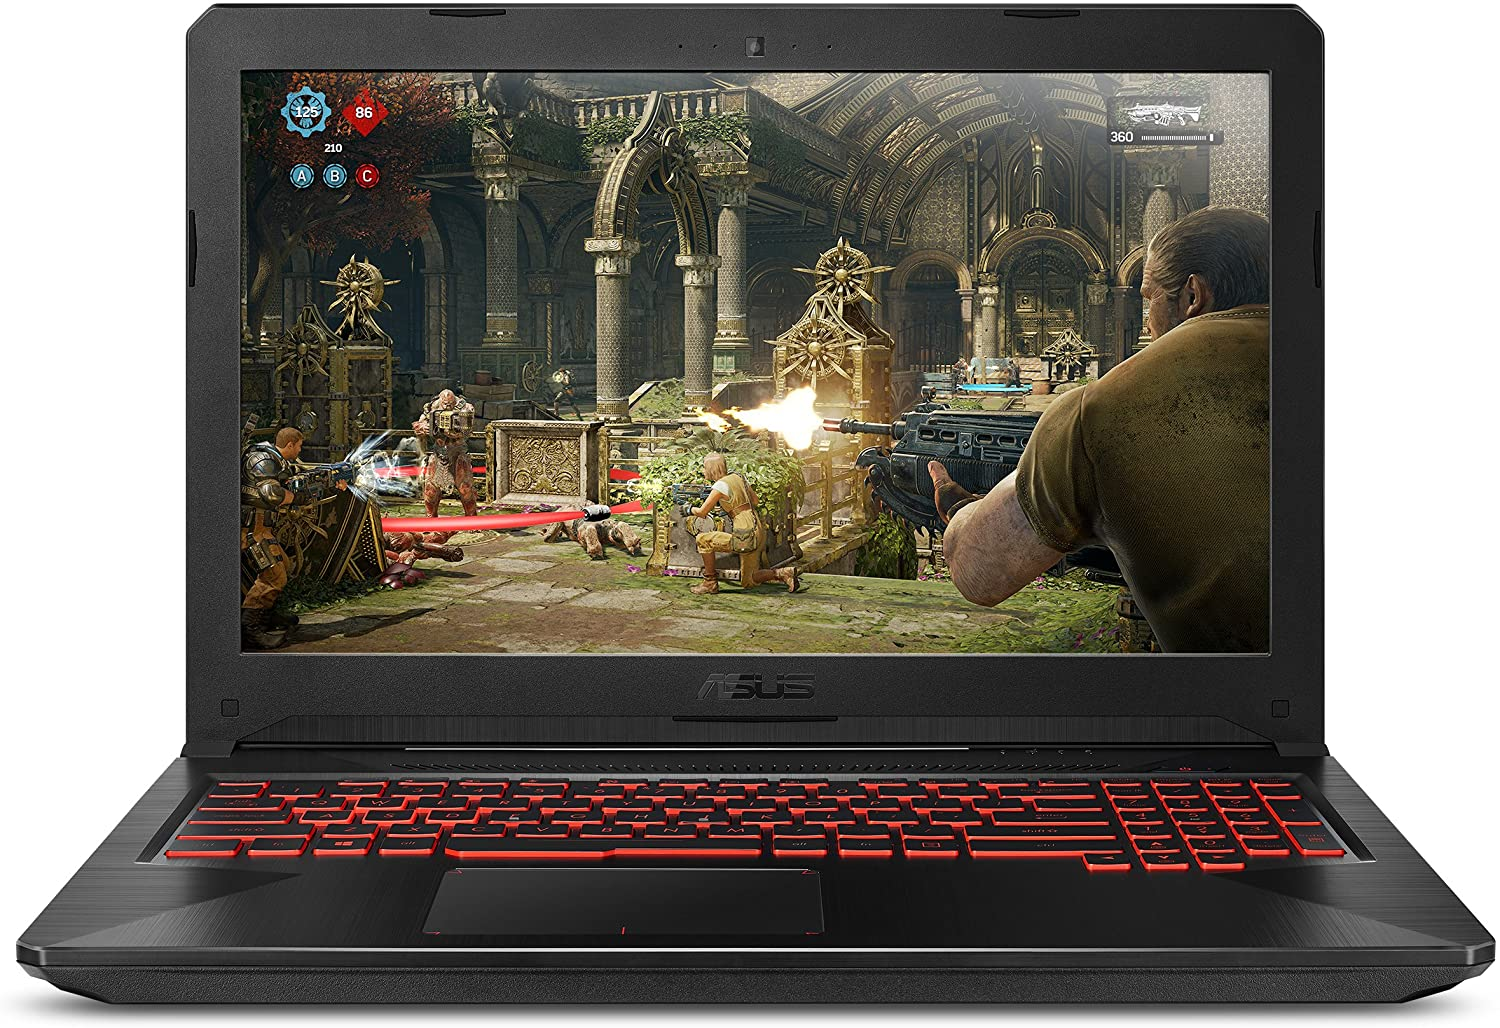 "Asus TUF Gaming Laptop FX504 15.6"" Full HD IPS-Level, 8th Gen Intel Core i5-8300H (Up to 3.9GHz), GeForce GTX 1050, 8GB DDR4 2666MHz, 256GB M.2 SSD, Gigabit WiFi, Windows 10 - FX504GD-NH51"